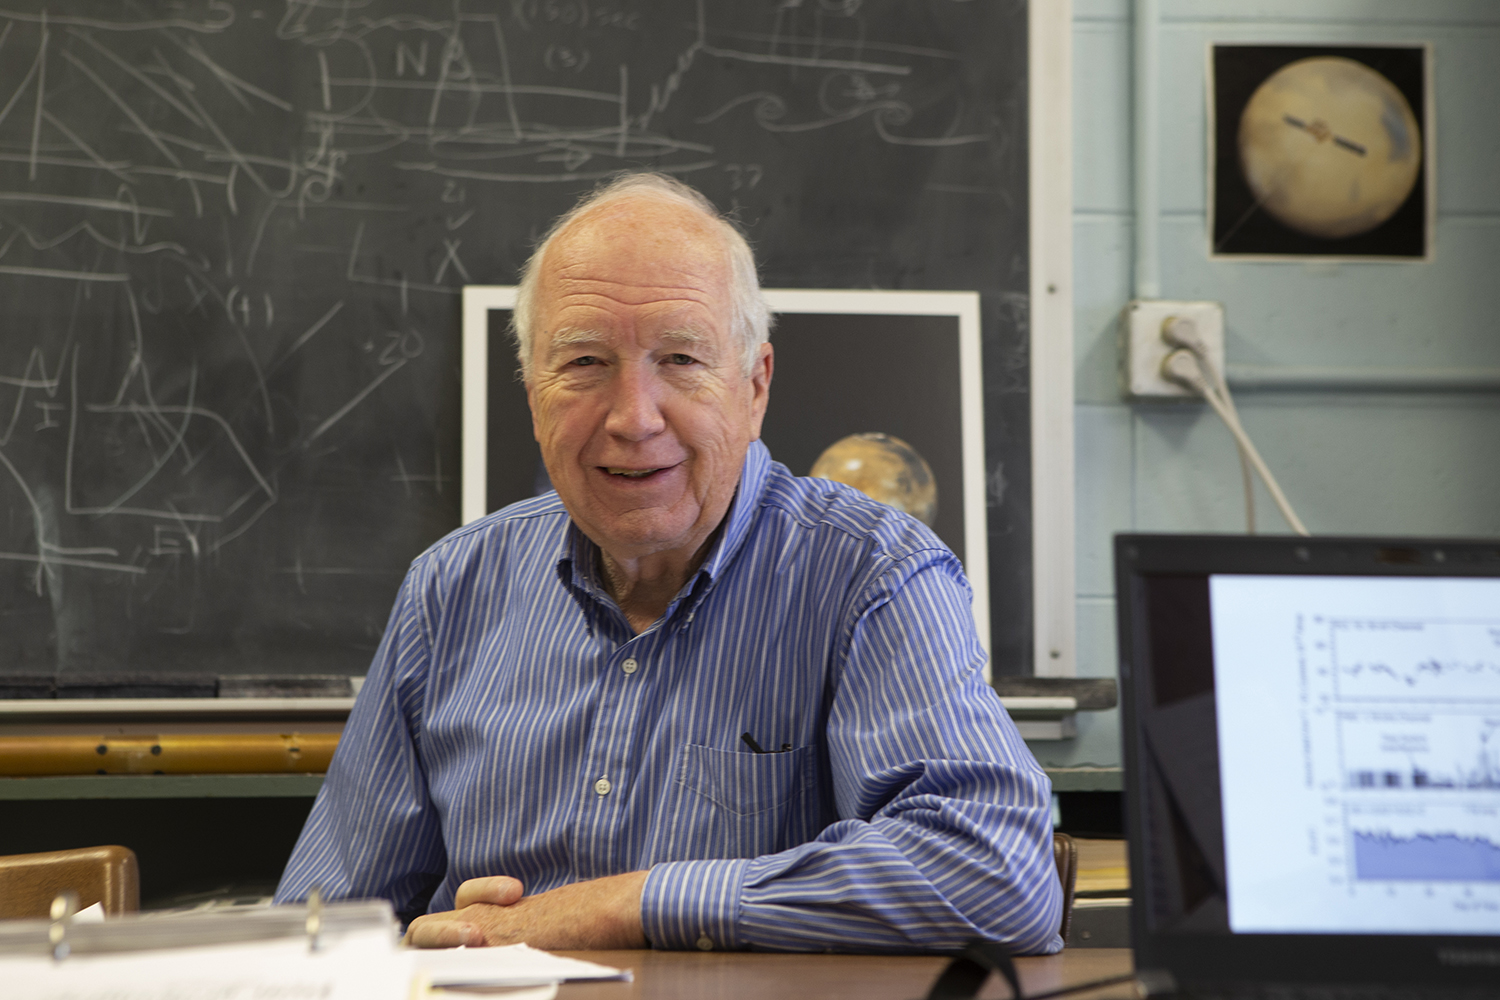 University of Iowa Scientist, Don Gurnett, is photographed in his office in Van Allen Hall on Tuesday, November 12, 2019.  Gurnett took part in creating the vital instrument for Voyager 2. (Raquele Decker/The Daily Iowan)